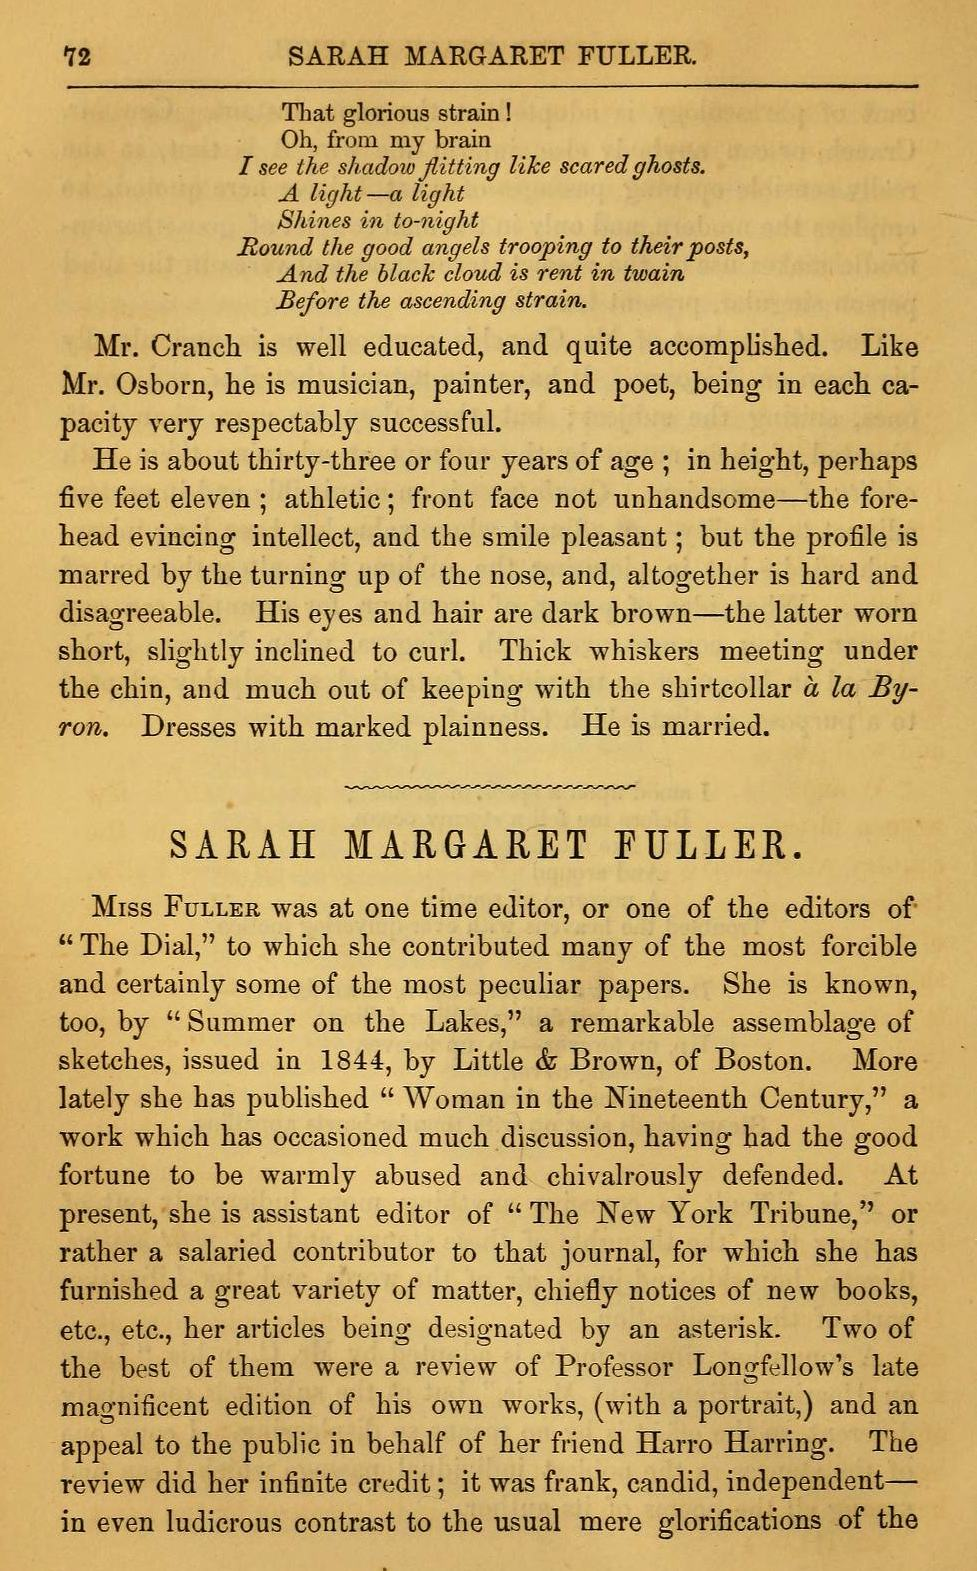 margaret fuller essay Biography margaret fuller was born sarah margaret fuller on may 23, 1810 in cambridgeport, massachusetts she was a very intelligent, even precocious, child who.